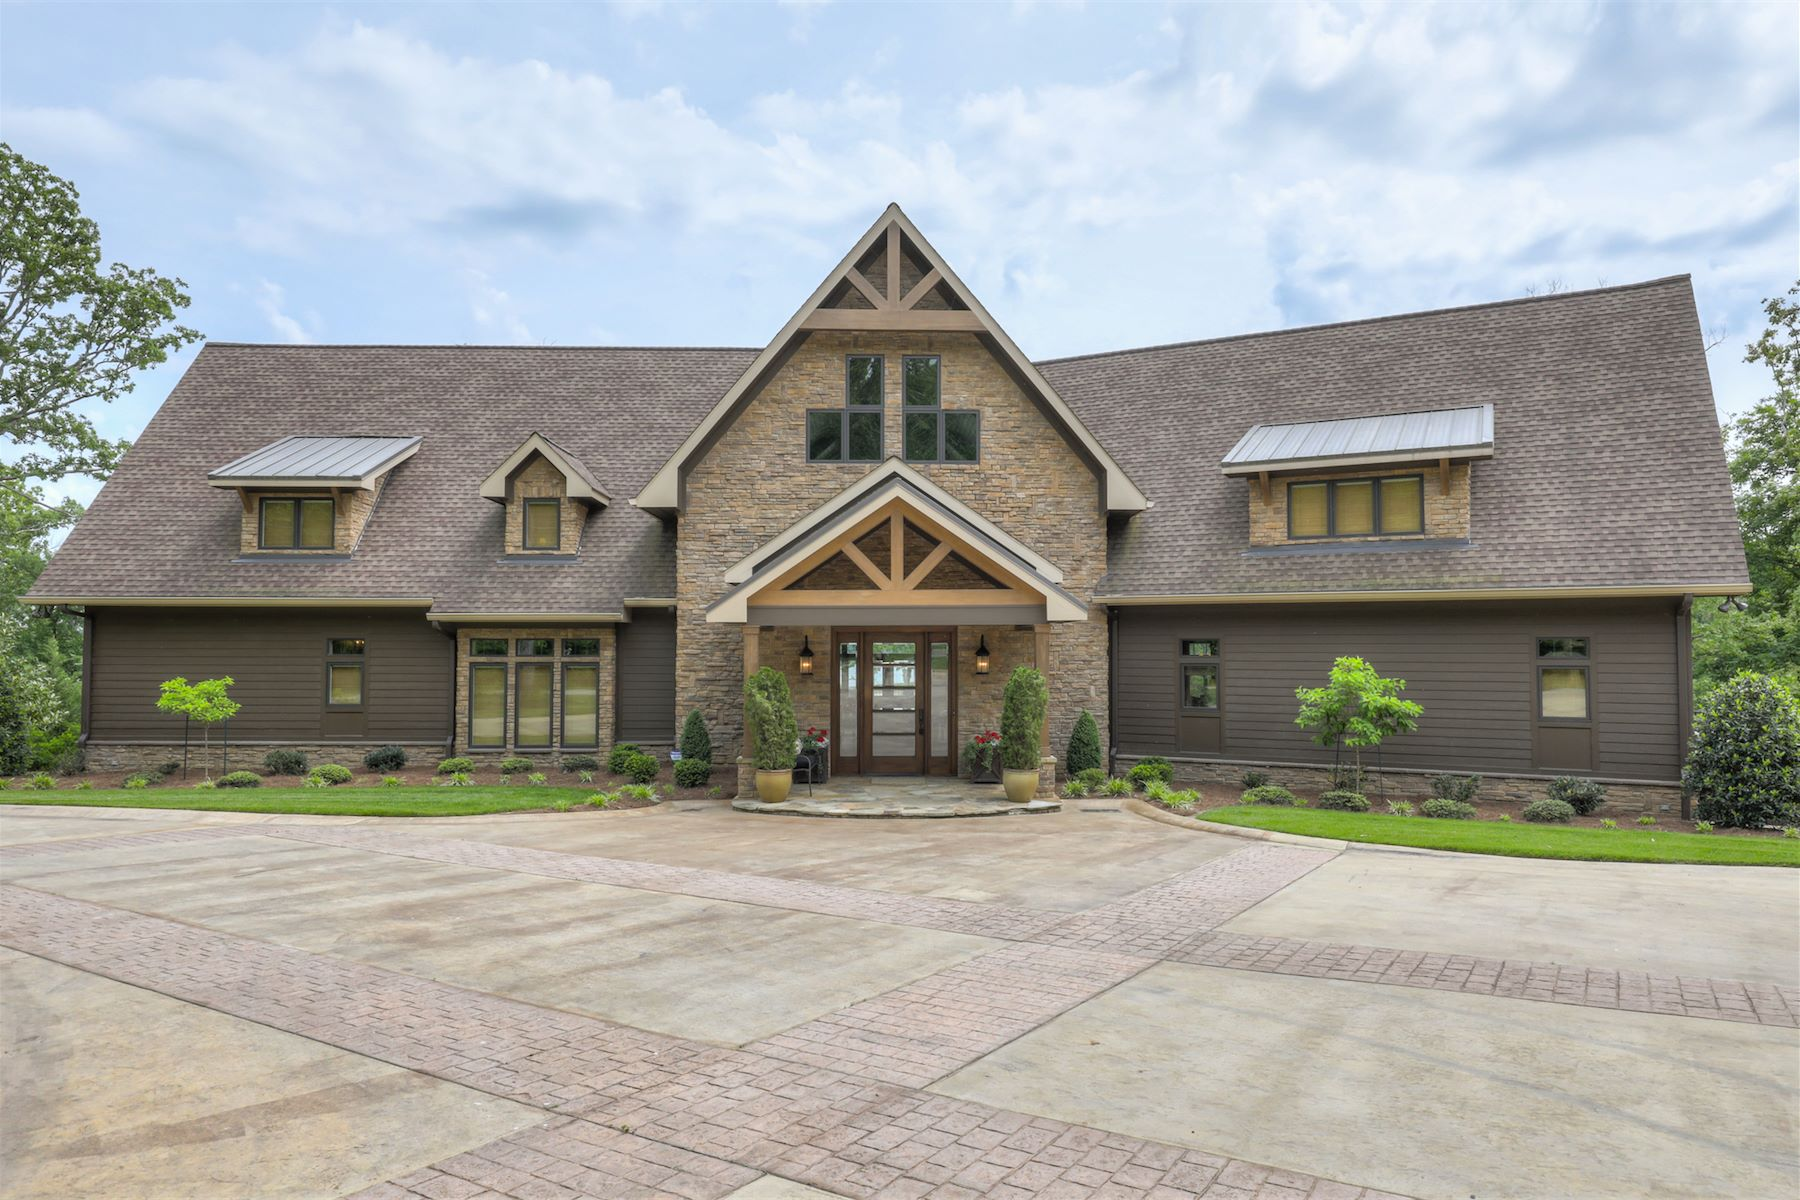 Single Family Home for Sale at Luxury Lake Home at Little Cypress Bay 310 Leisure Acres Buchanan, Tennessee, 38222 United States